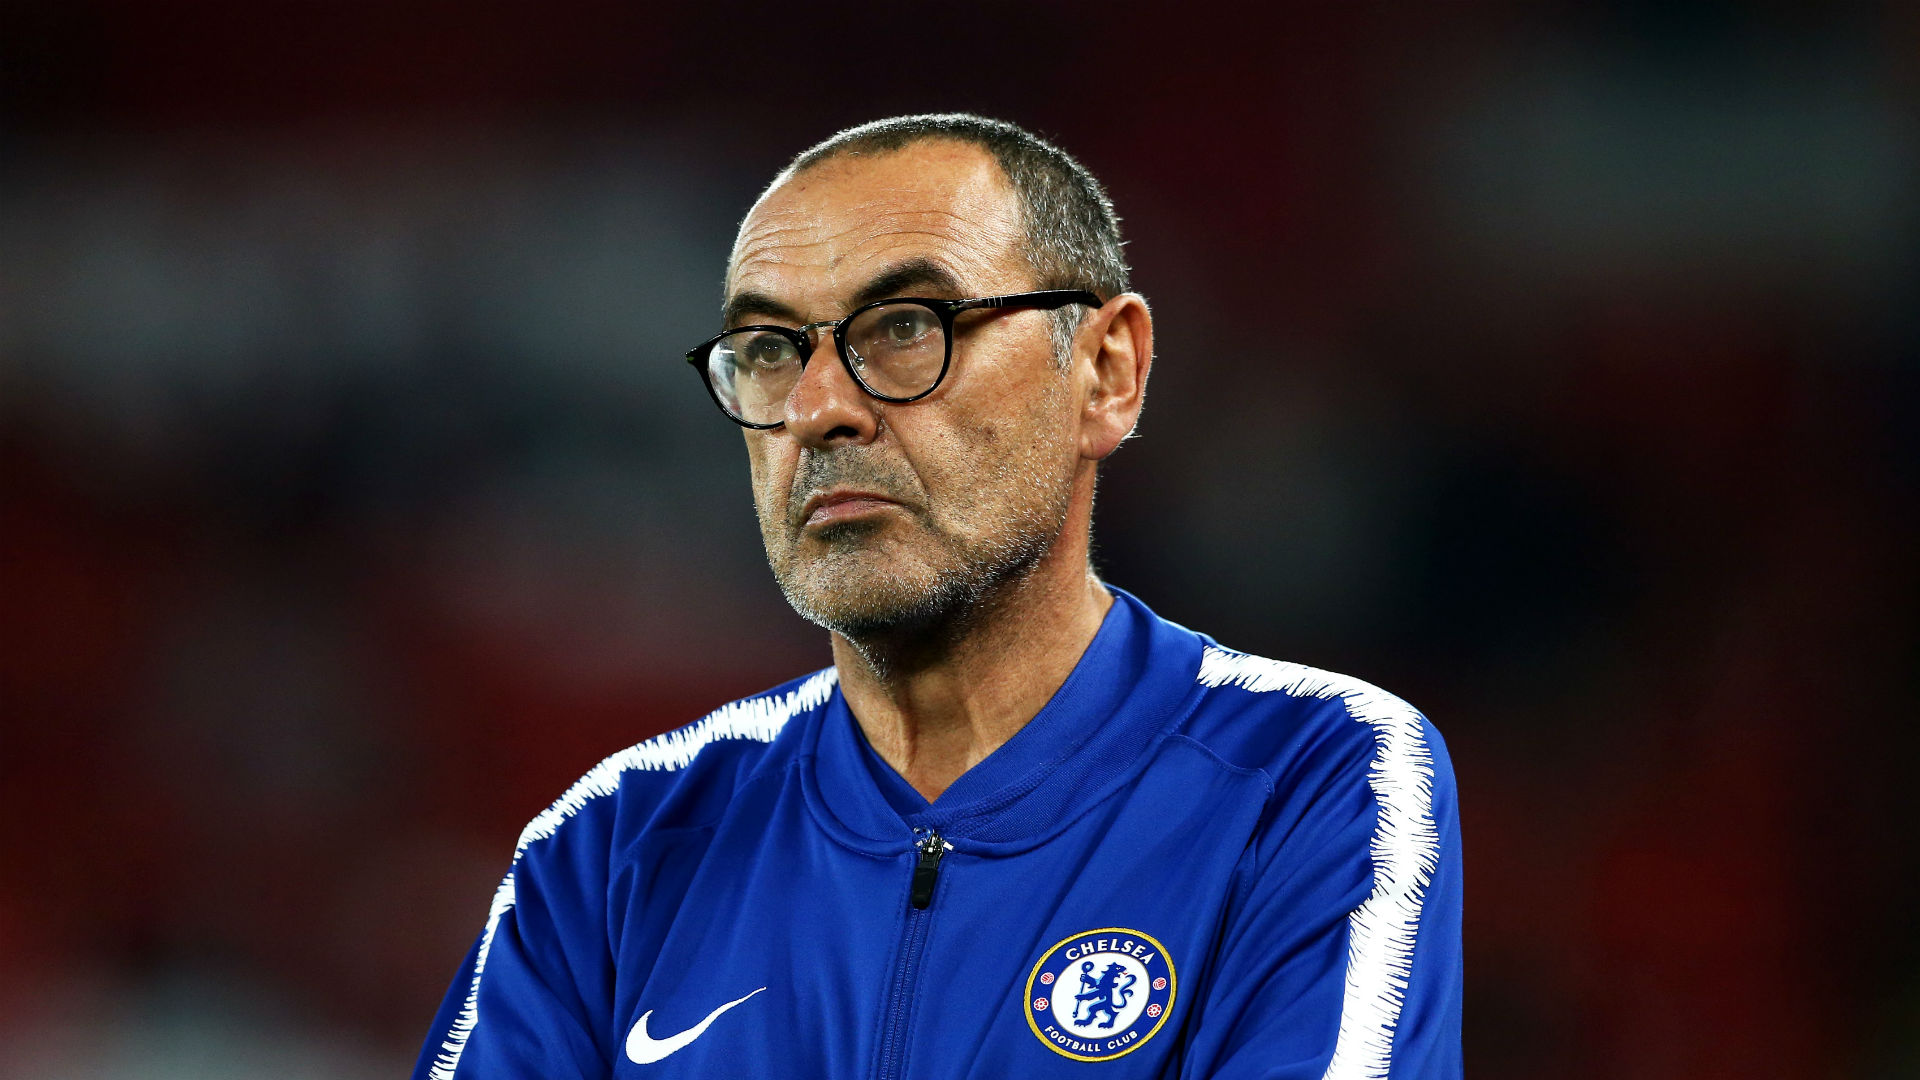 Maurizio Sarri questions Chelsea players' attitude after Wolves defeat